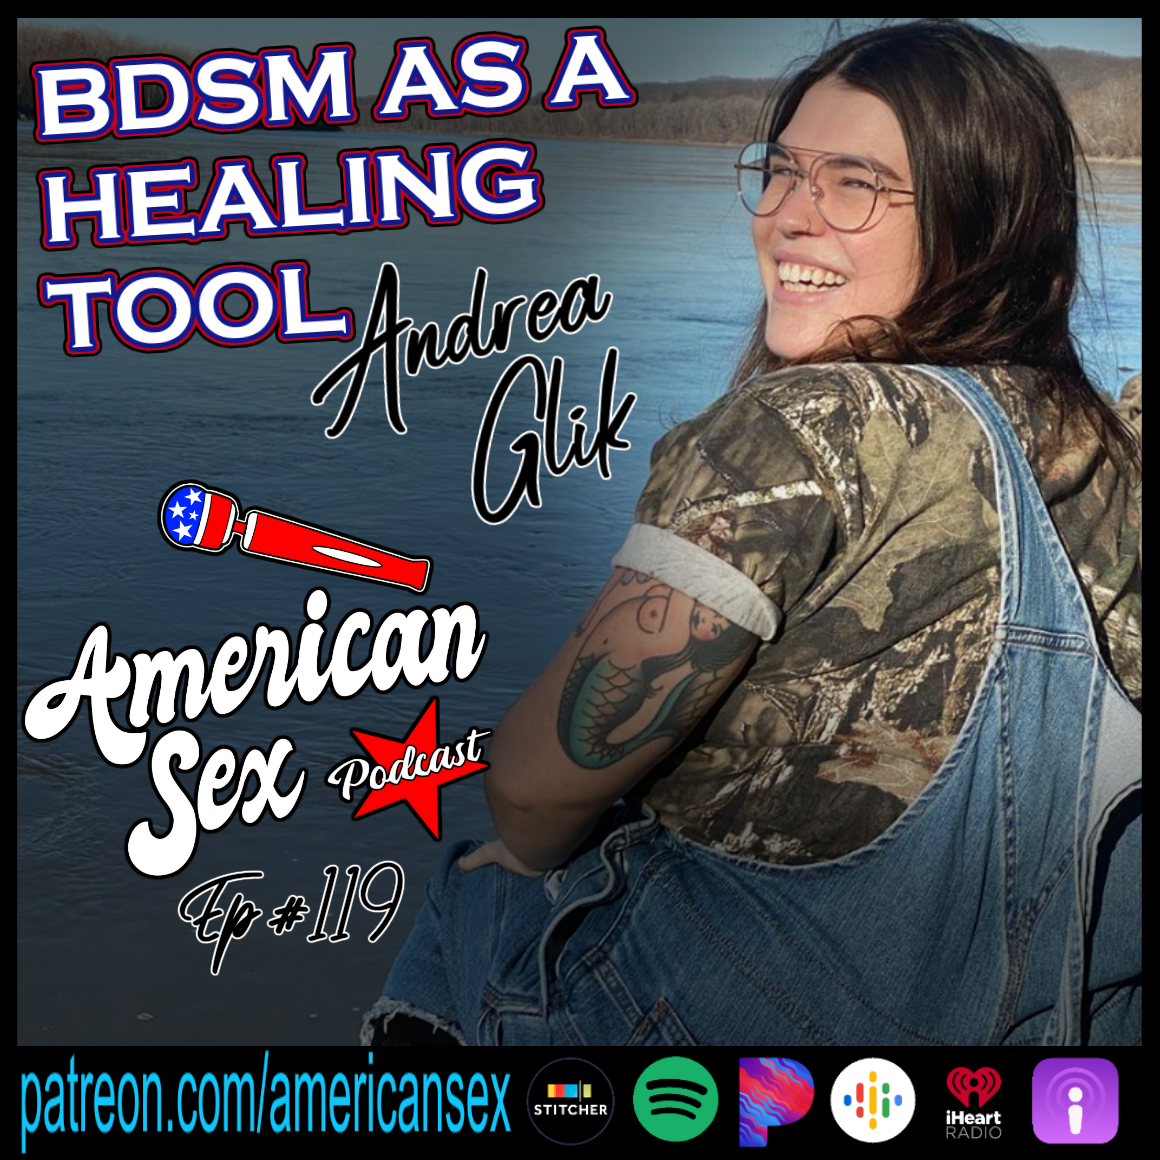 Andrea Porn Video Space Odyssey american sex podcast